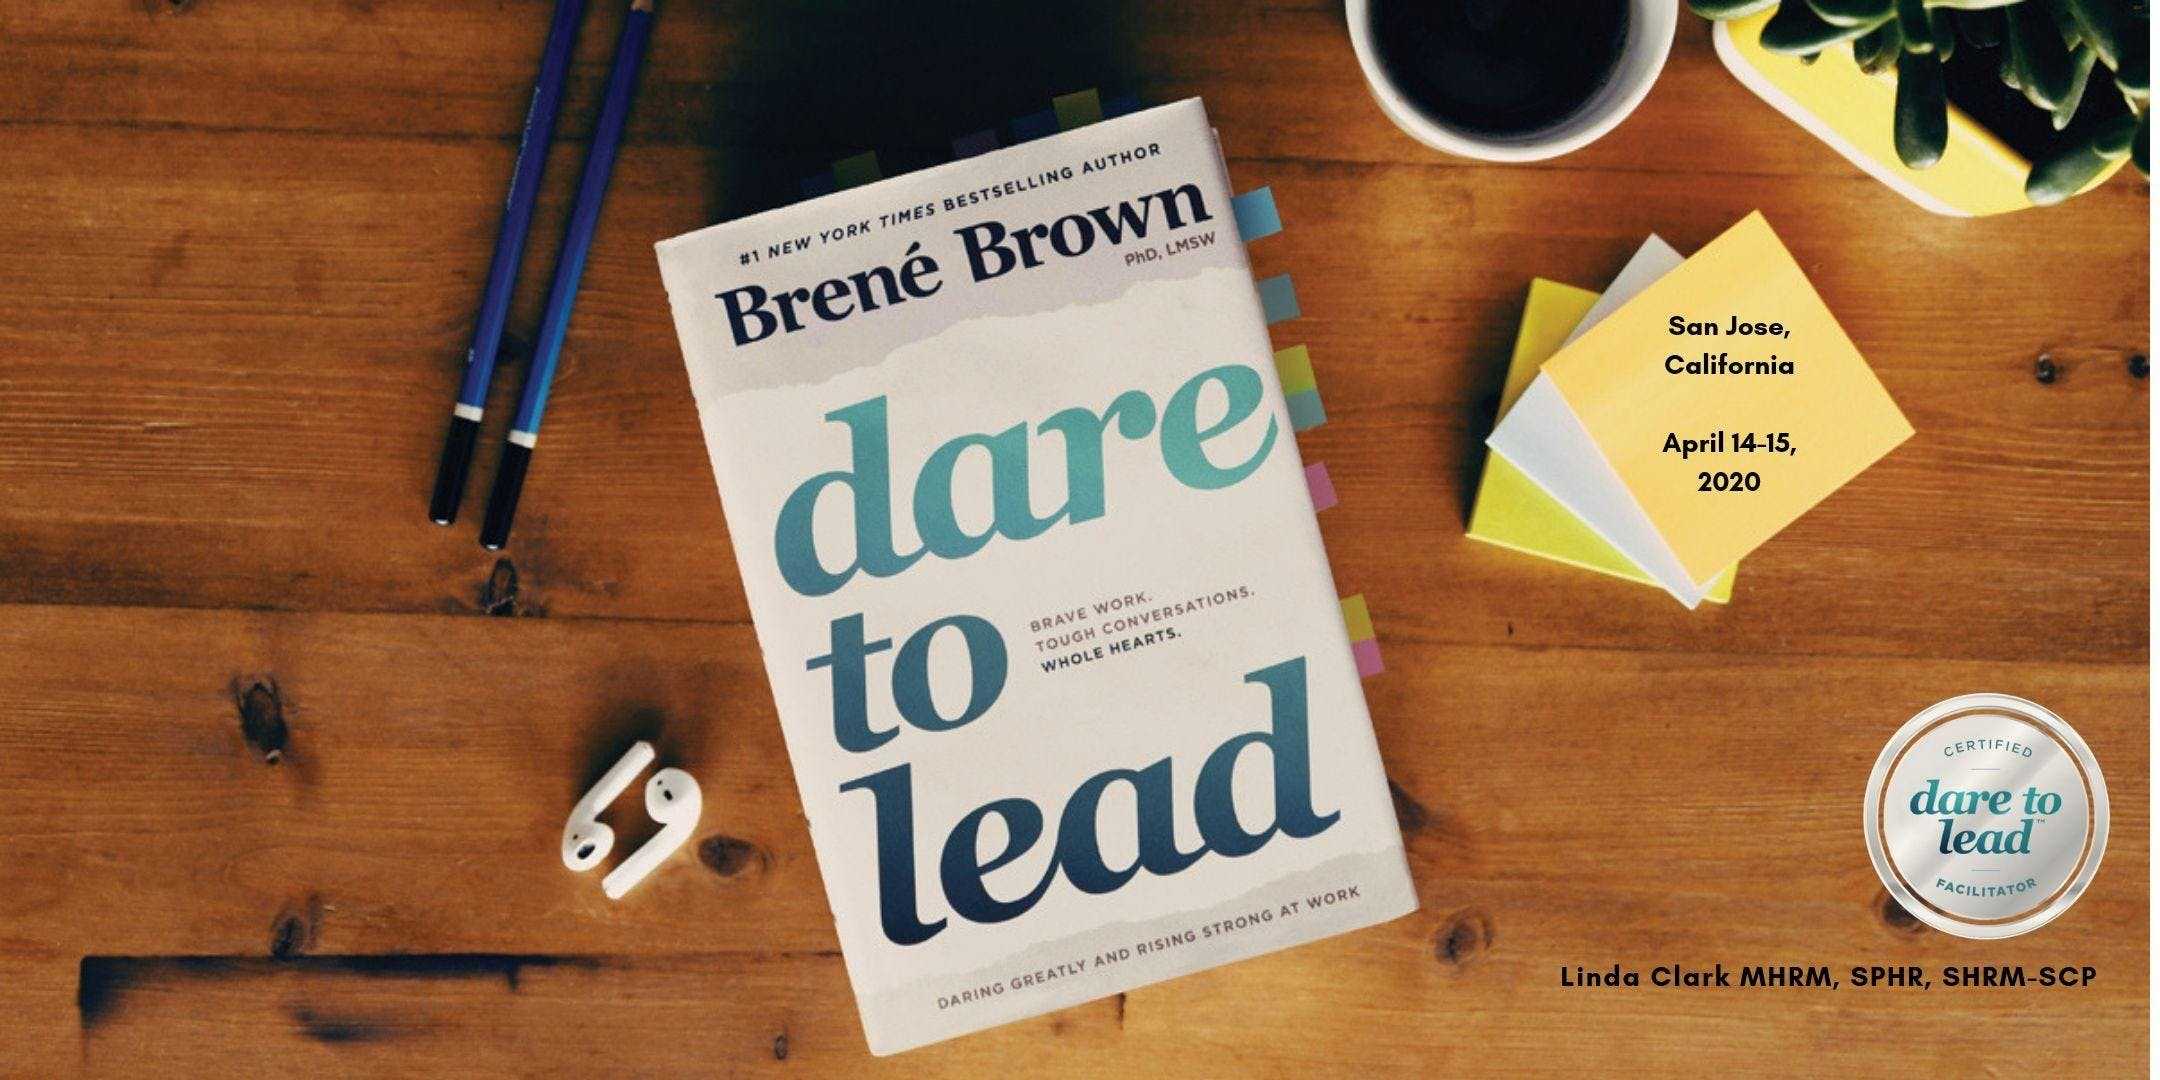 Dare to Lead 2-Day Leadership Workshop April 14-15 2020 with Linda Clark